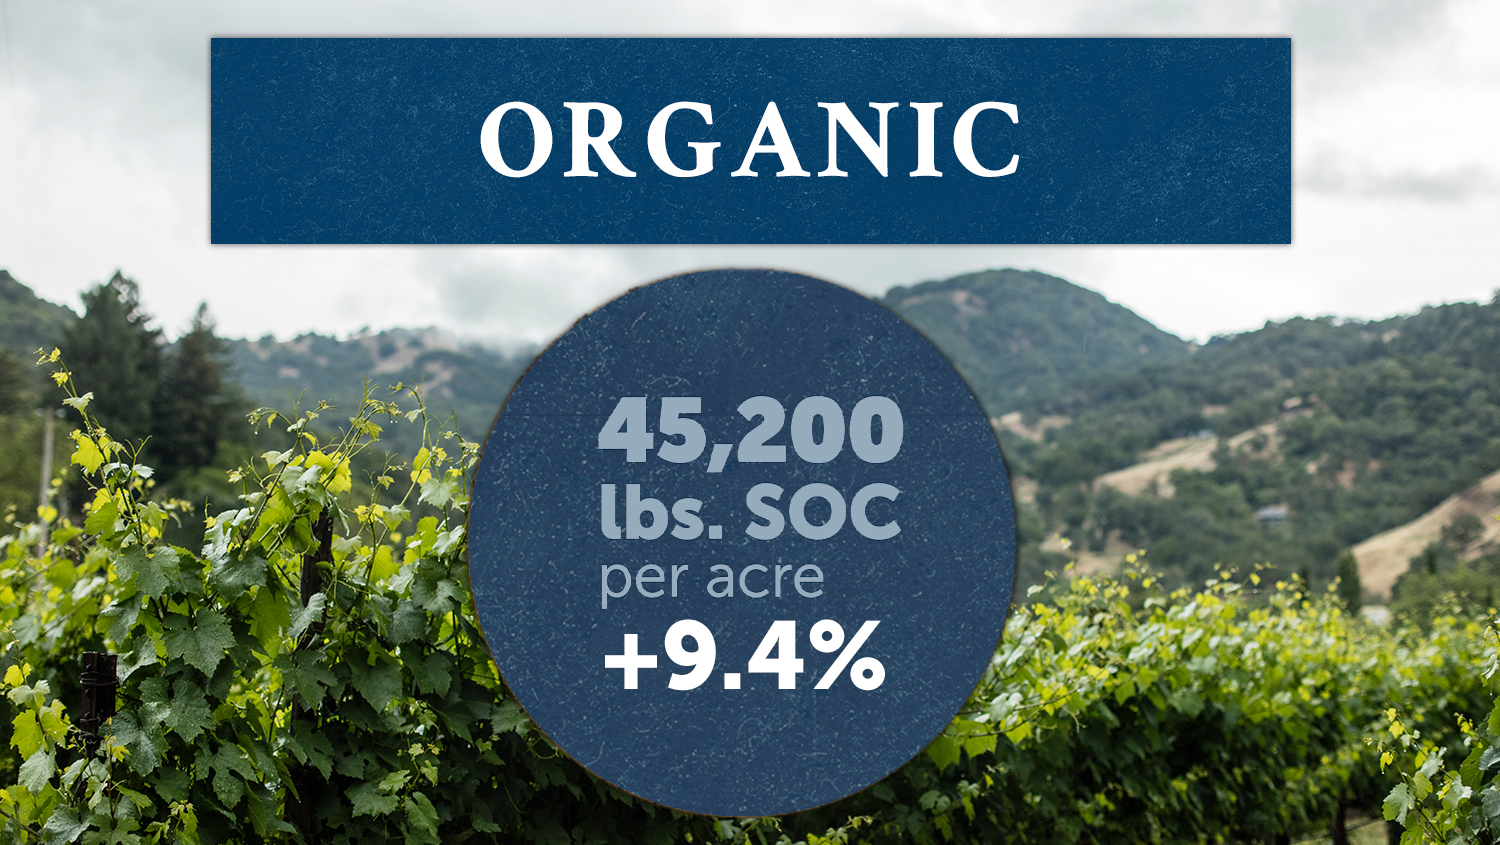 The study analyzed SOC levels in 9 organic vineyards, with organically farmed sites holding +9.4% SOC. More organic carbon in soils means improved biodiversity, drought resistance and erosion prevention.